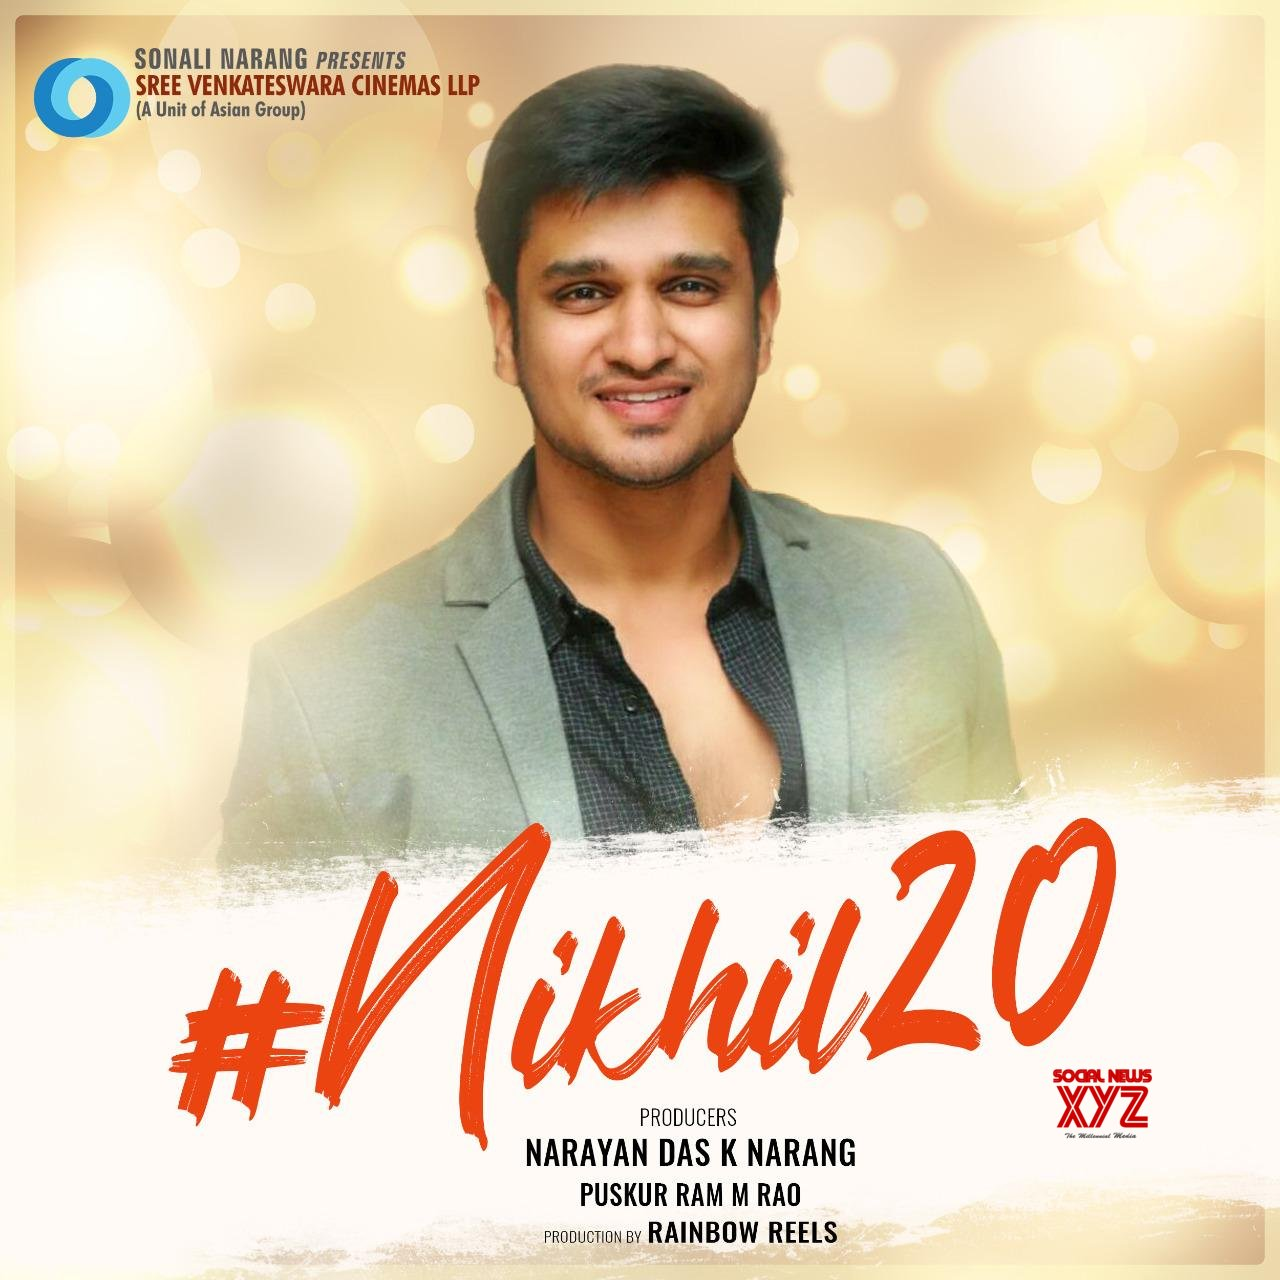 Nikhil's #Nikhil20 Confirmed In SVC LLP's Next Venture Produced By Narayandas K Narang And Puskur Ram M Rao In Rainbow Reels Production